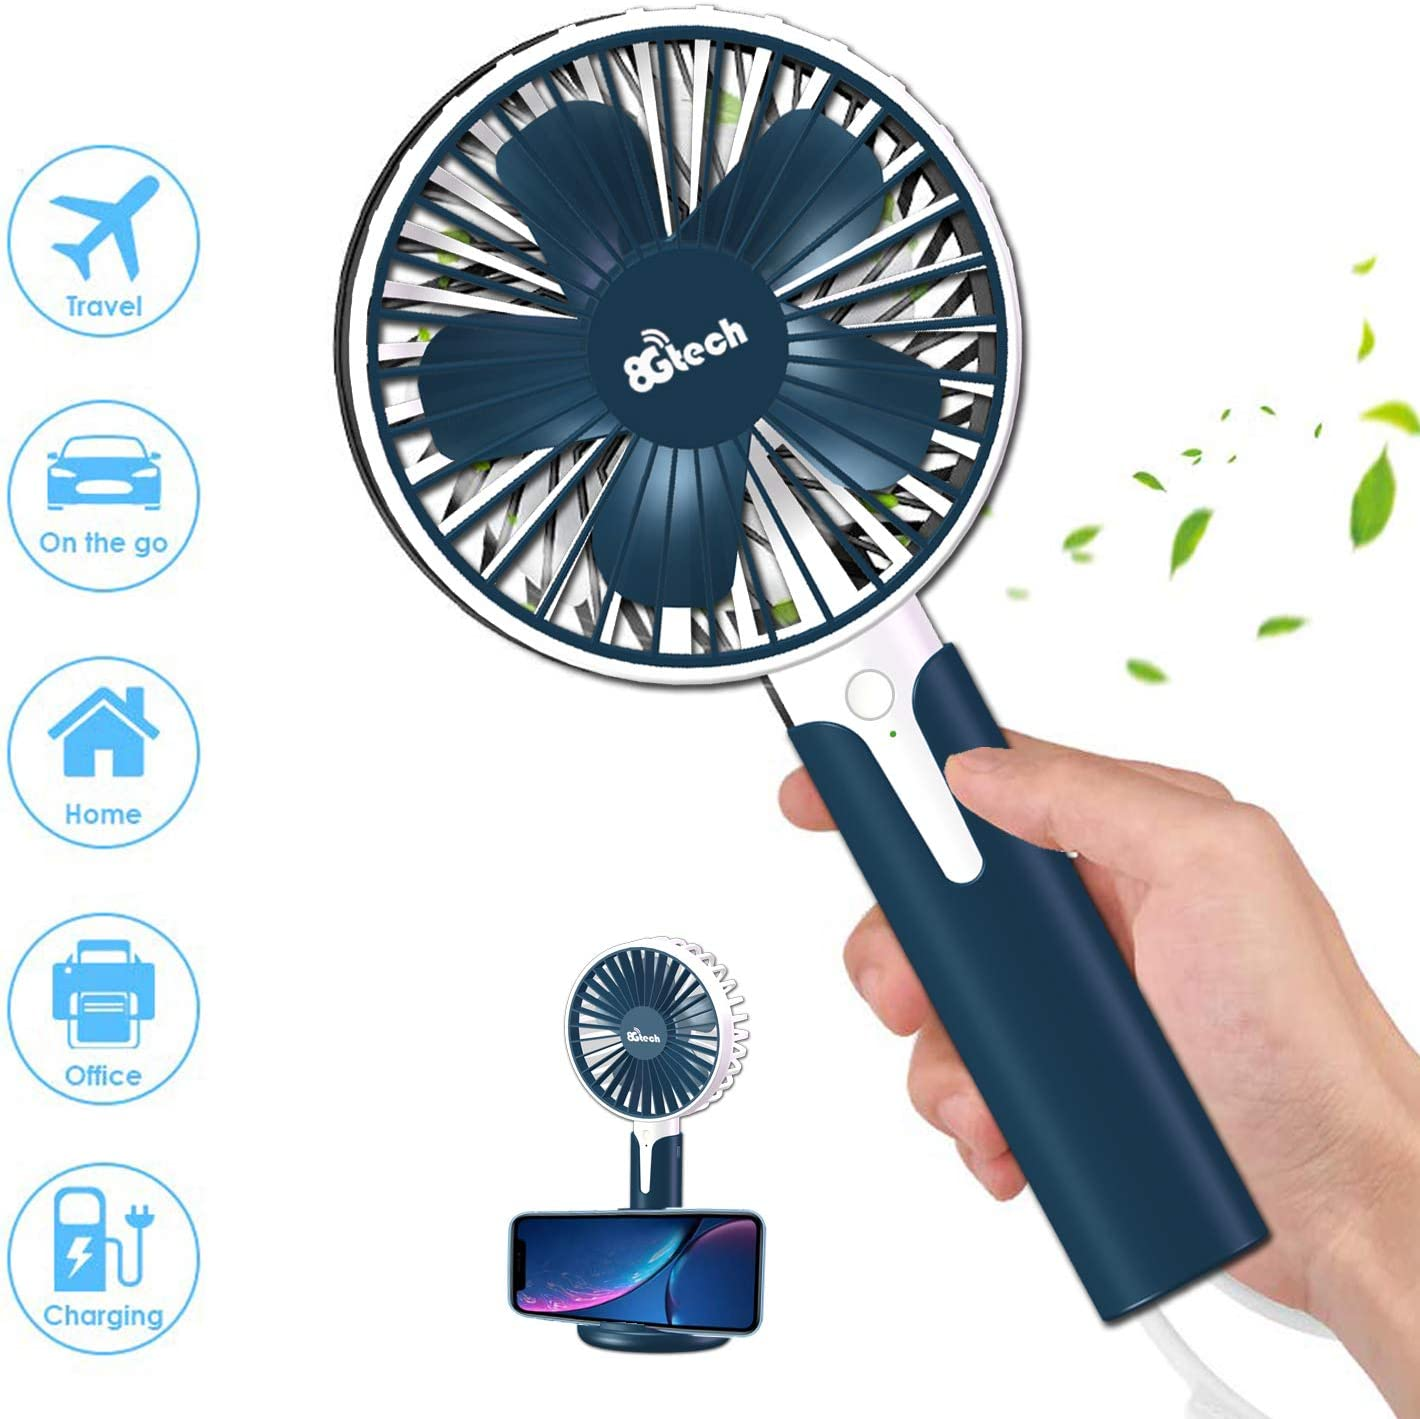 8Gtech Mini Handheld Fan, Desk Fan,Portable Personal Fan and Small Fan Stroller Table Fan with USB Rechargeable Battery Operated Cooling Electric Fan for Travel Office Room Outdoor Household